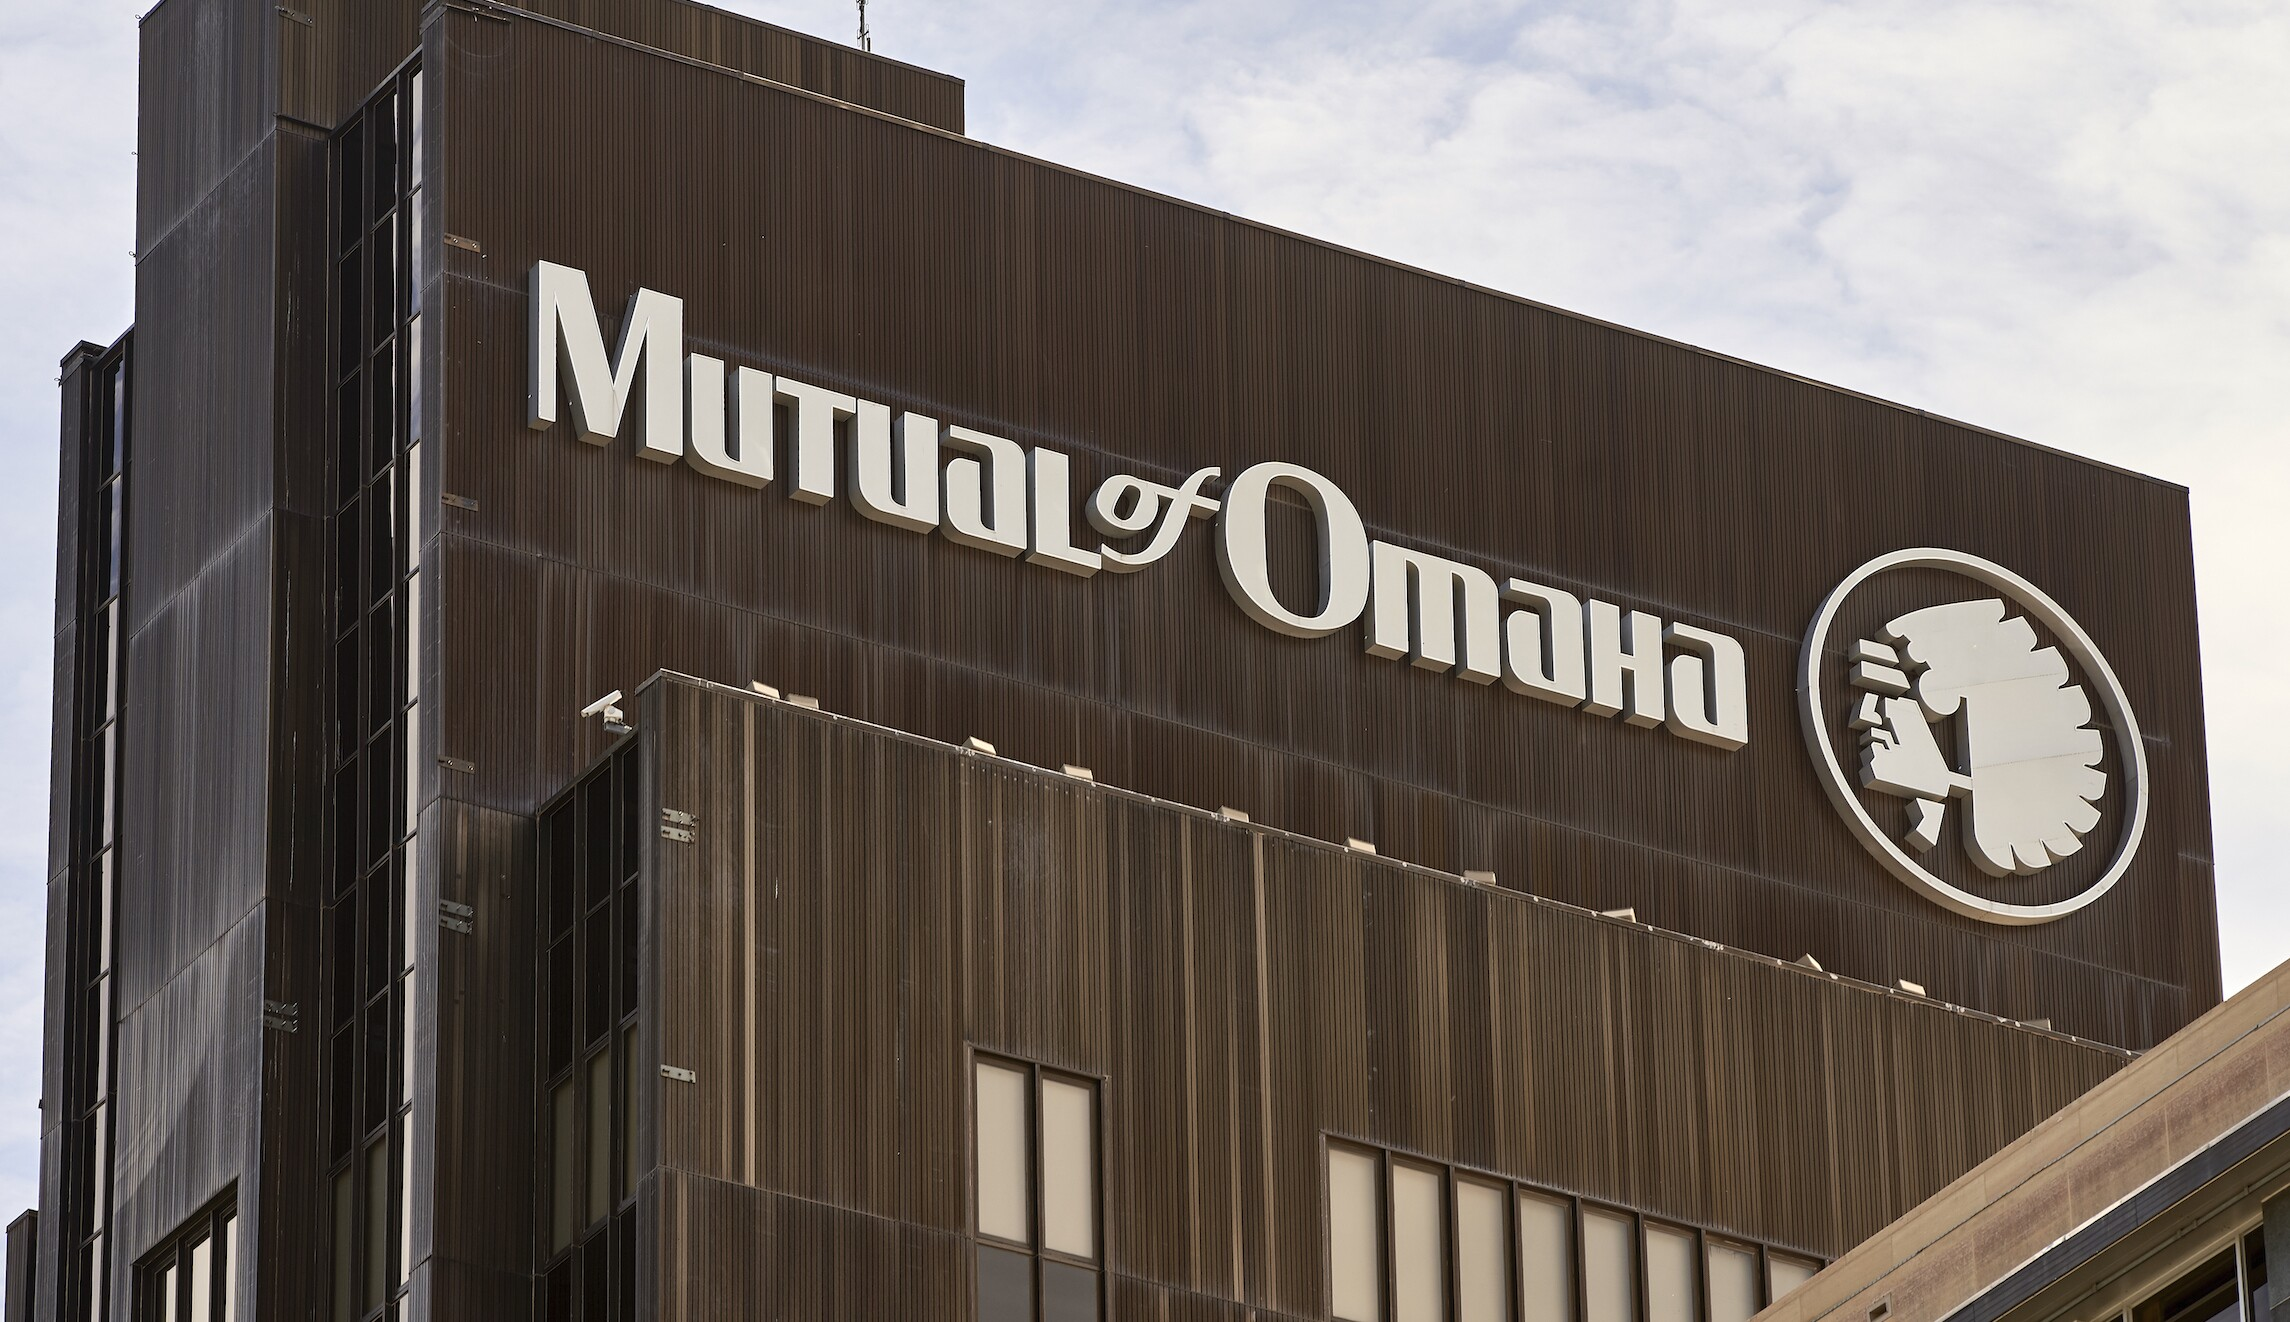 The Mutual of Omaha logo is seen at the company's corporate headquarters in Omaha, Nebraska, on Friday. Insurance company Mutual of Omaha has announced it will replace its longtime corporate logo, which features a depiction of a Native American chief.